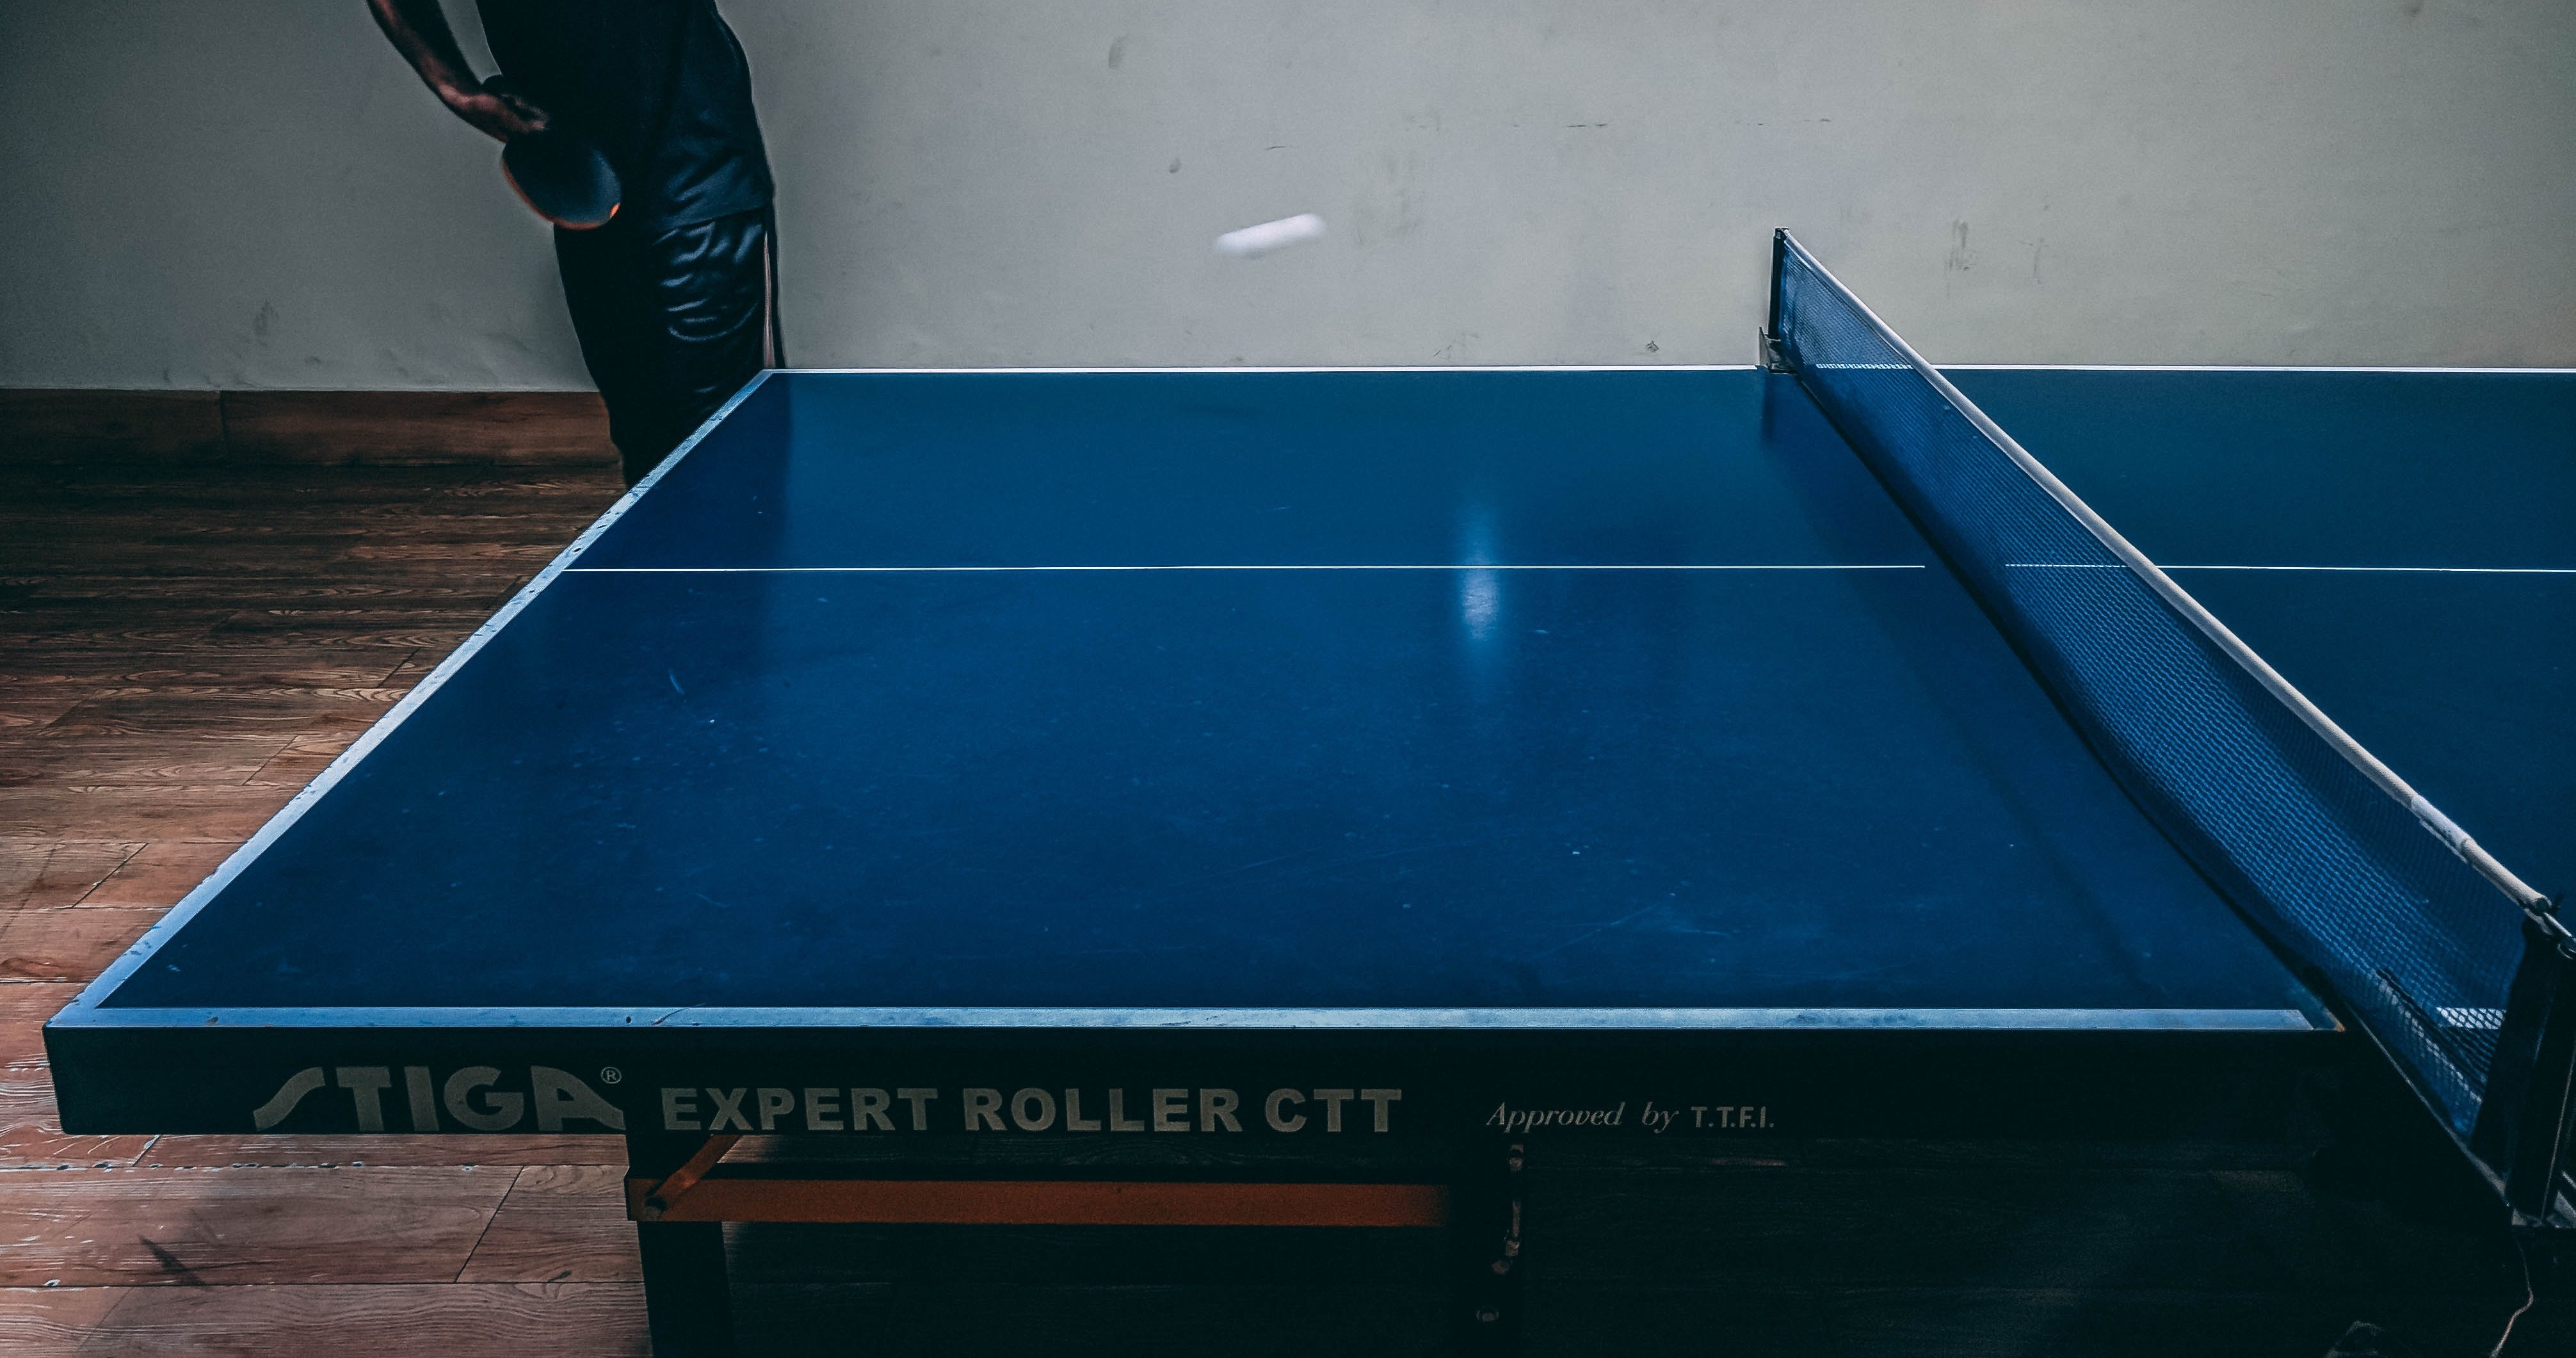 Tremendous Ping Pong Table Dimensions Room Size Requirements Ping Download Free Architecture Designs Embacsunscenecom